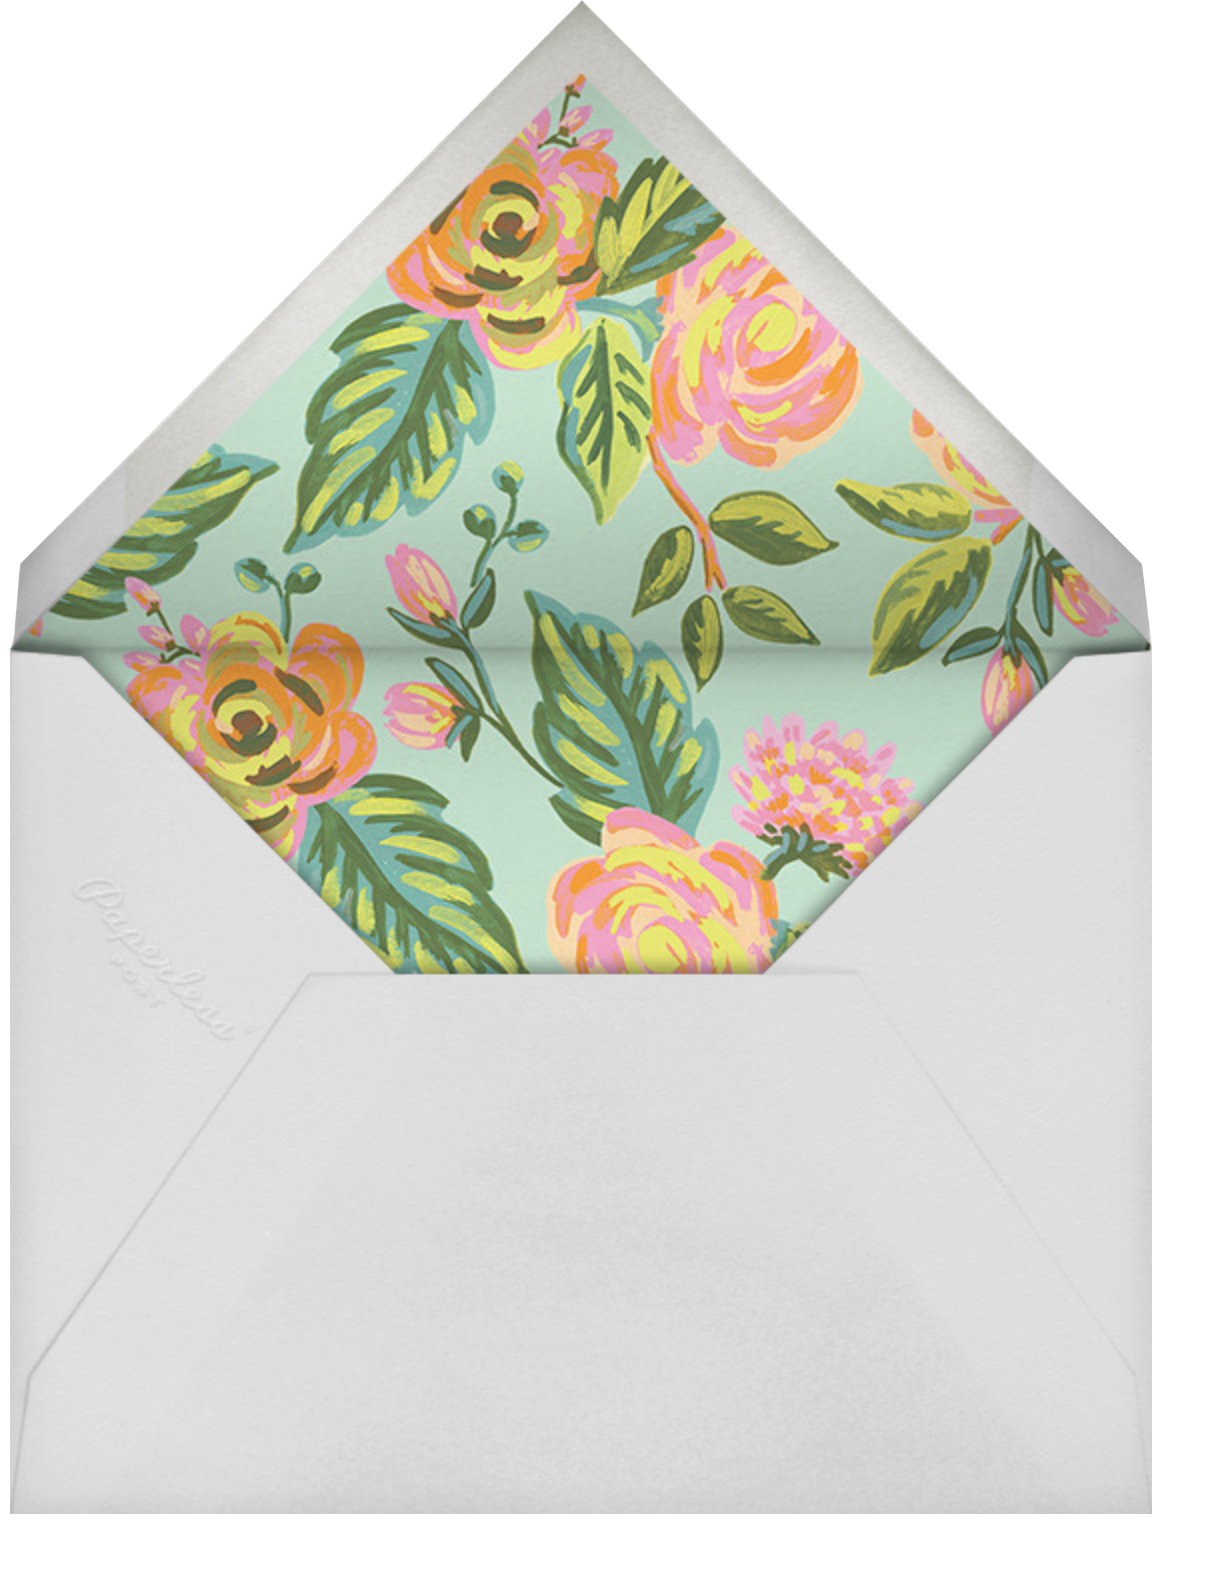 Rainbow Rose - Rifle Paper Co. - General entertaining - envelope back